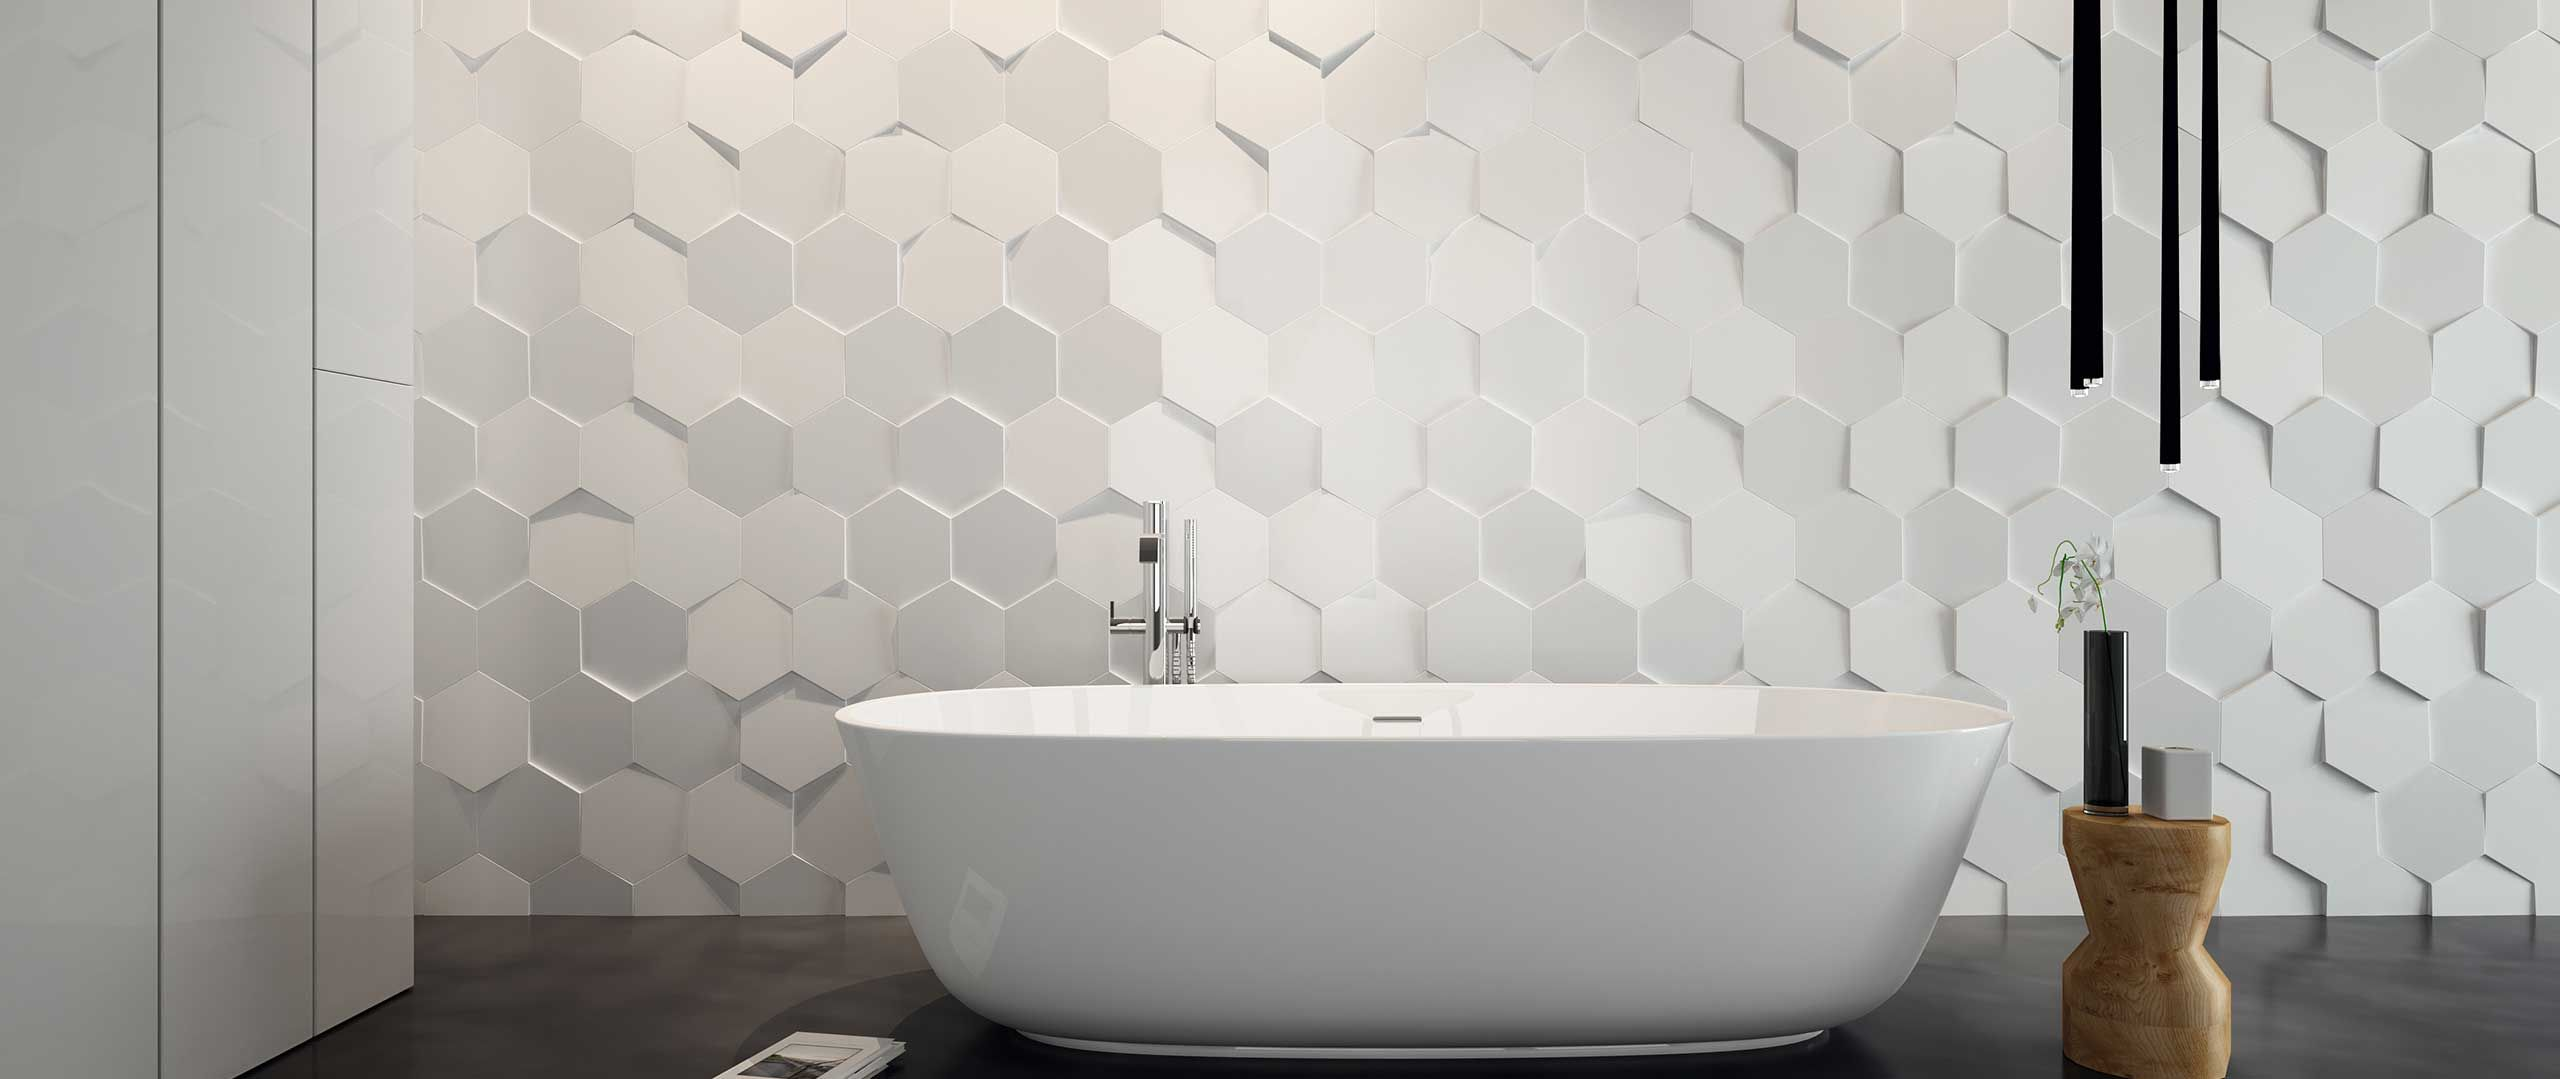 WOW Colletion | Wowdesigneu | Łazienka / bathroom | Pinterest | 3d tiles